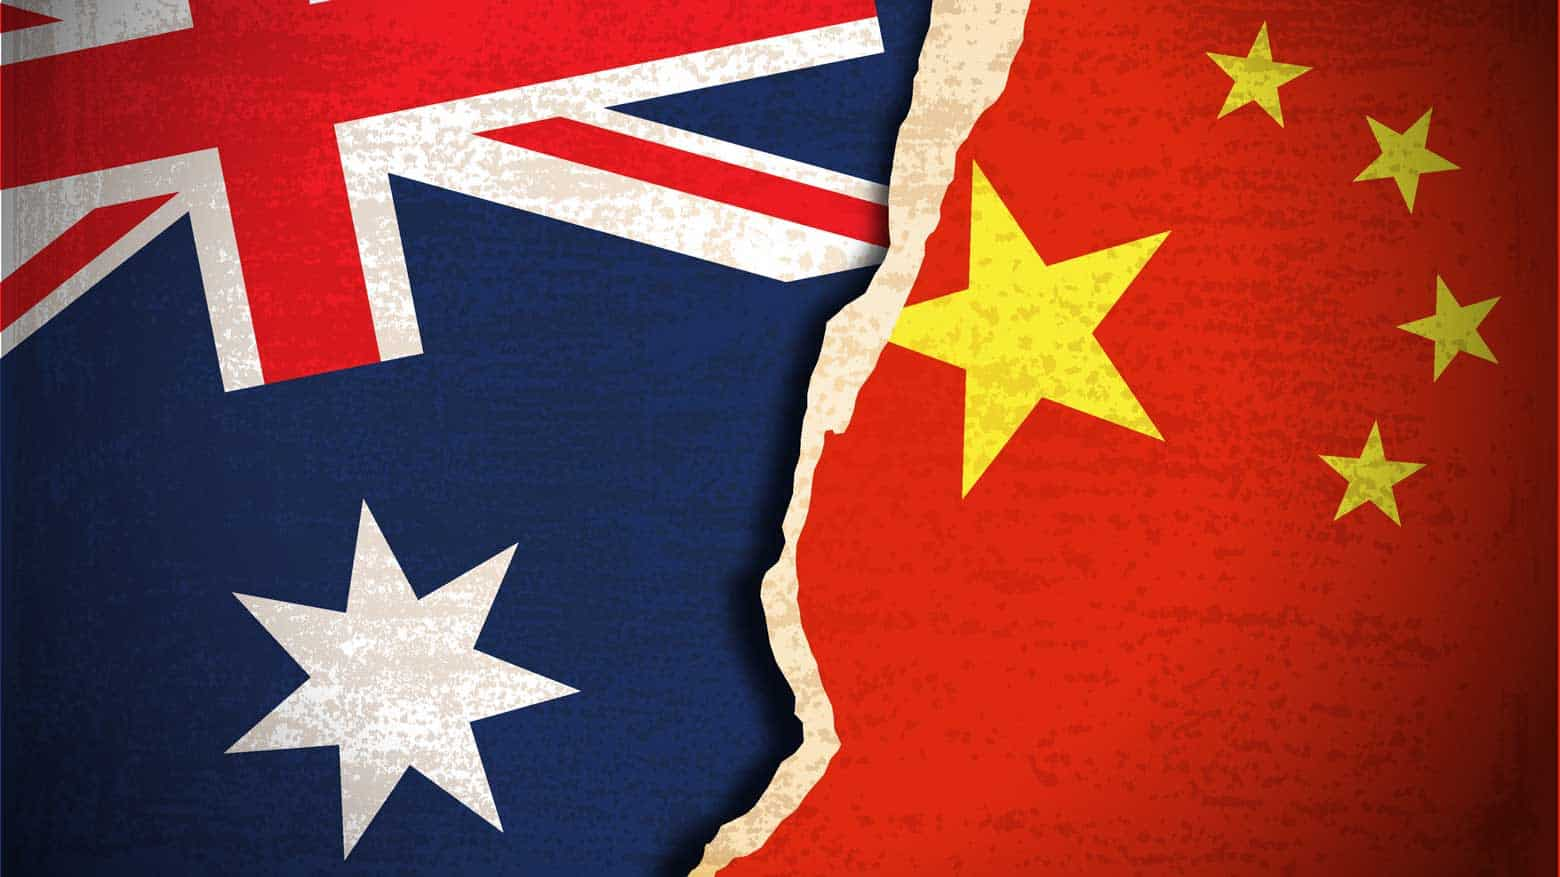 Chinese intelligence operations in Australia